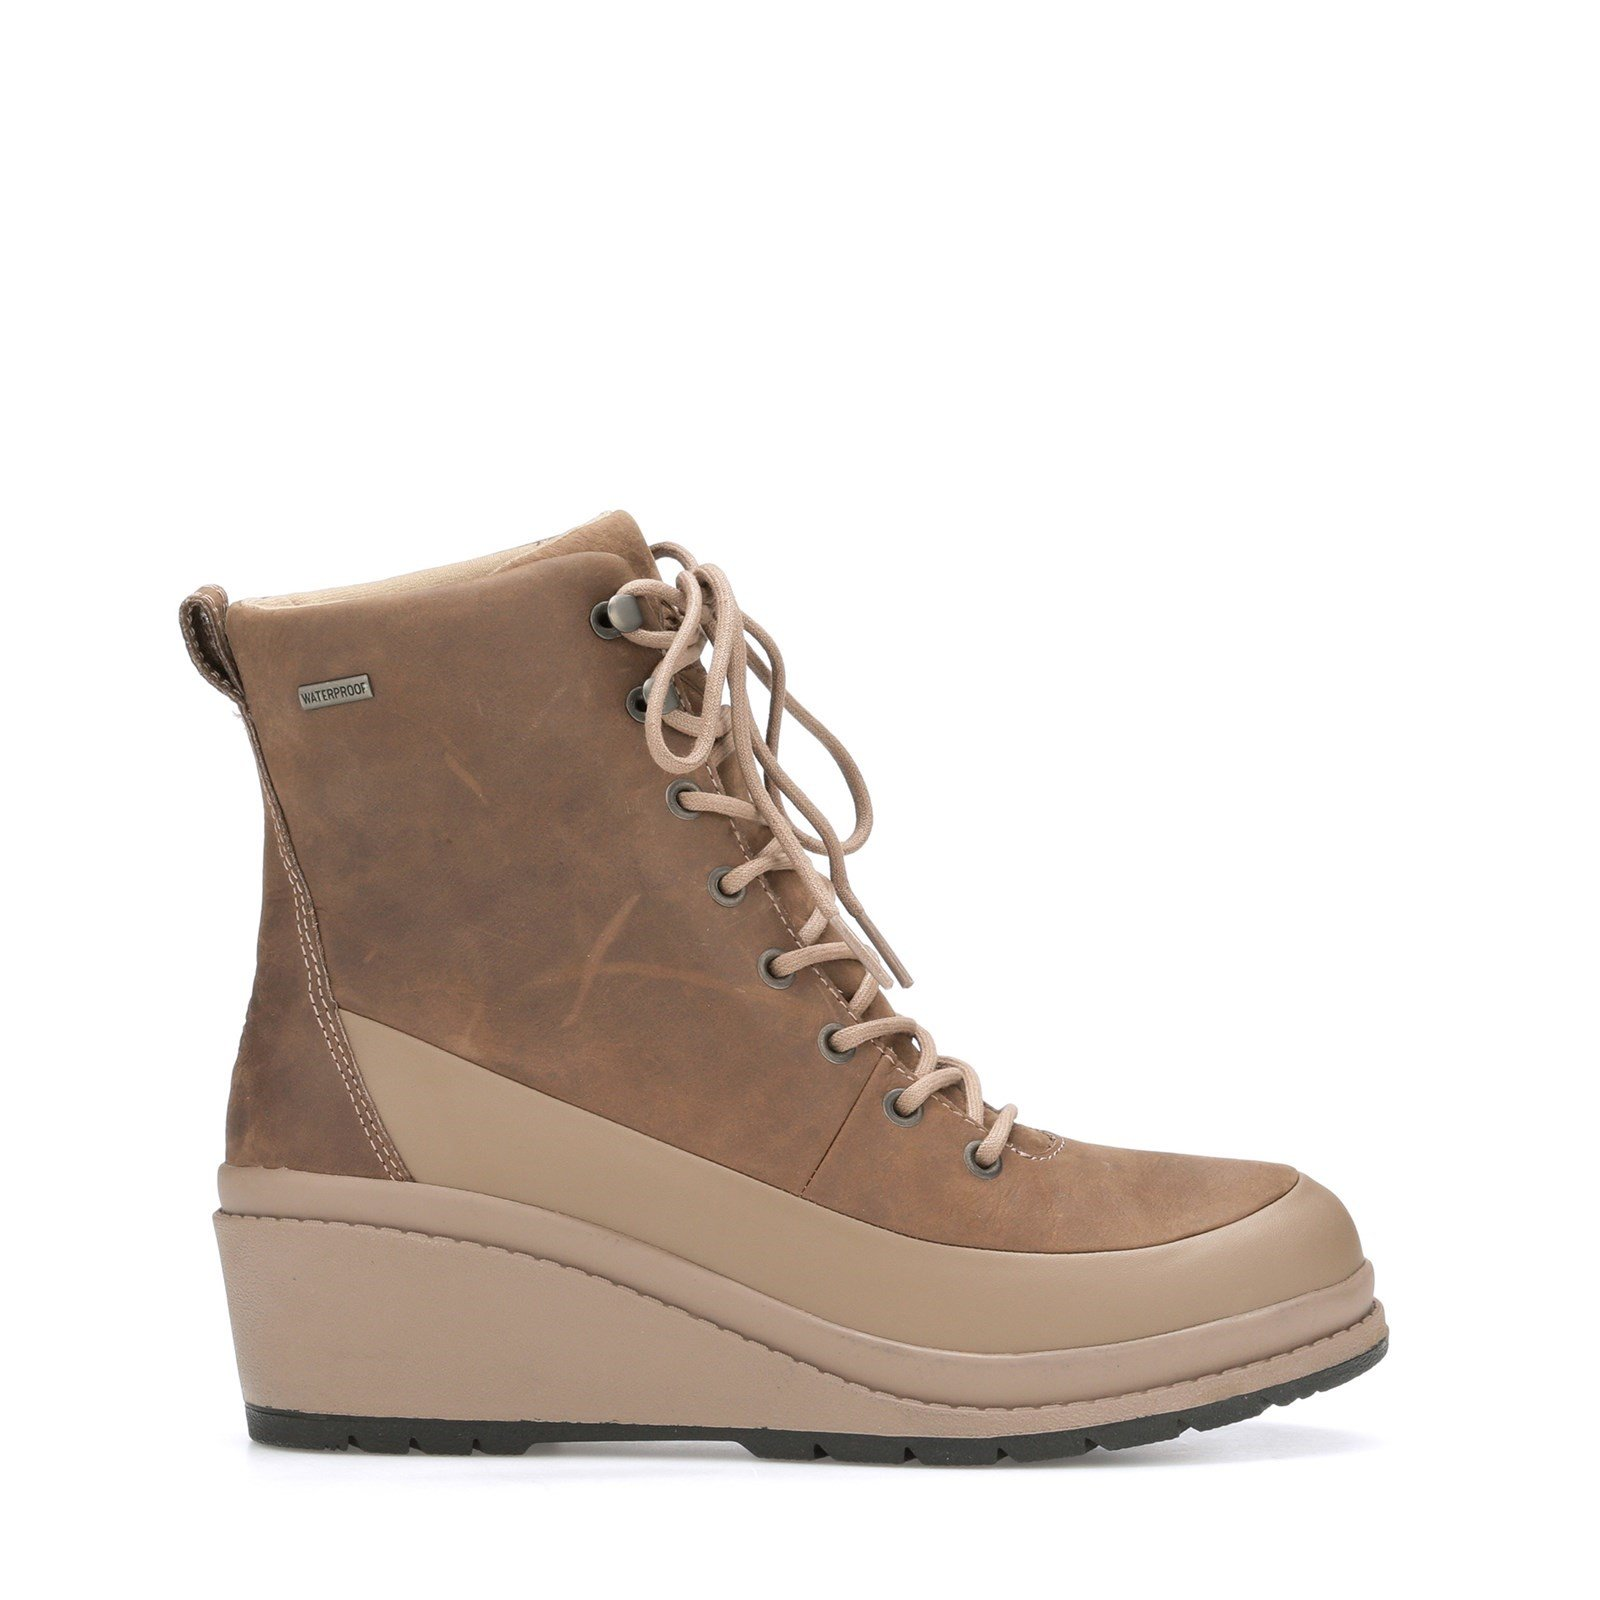 Muck Boots Women's Liberty Leather Ankle Boots Various Colours 31813 - Taupe 9